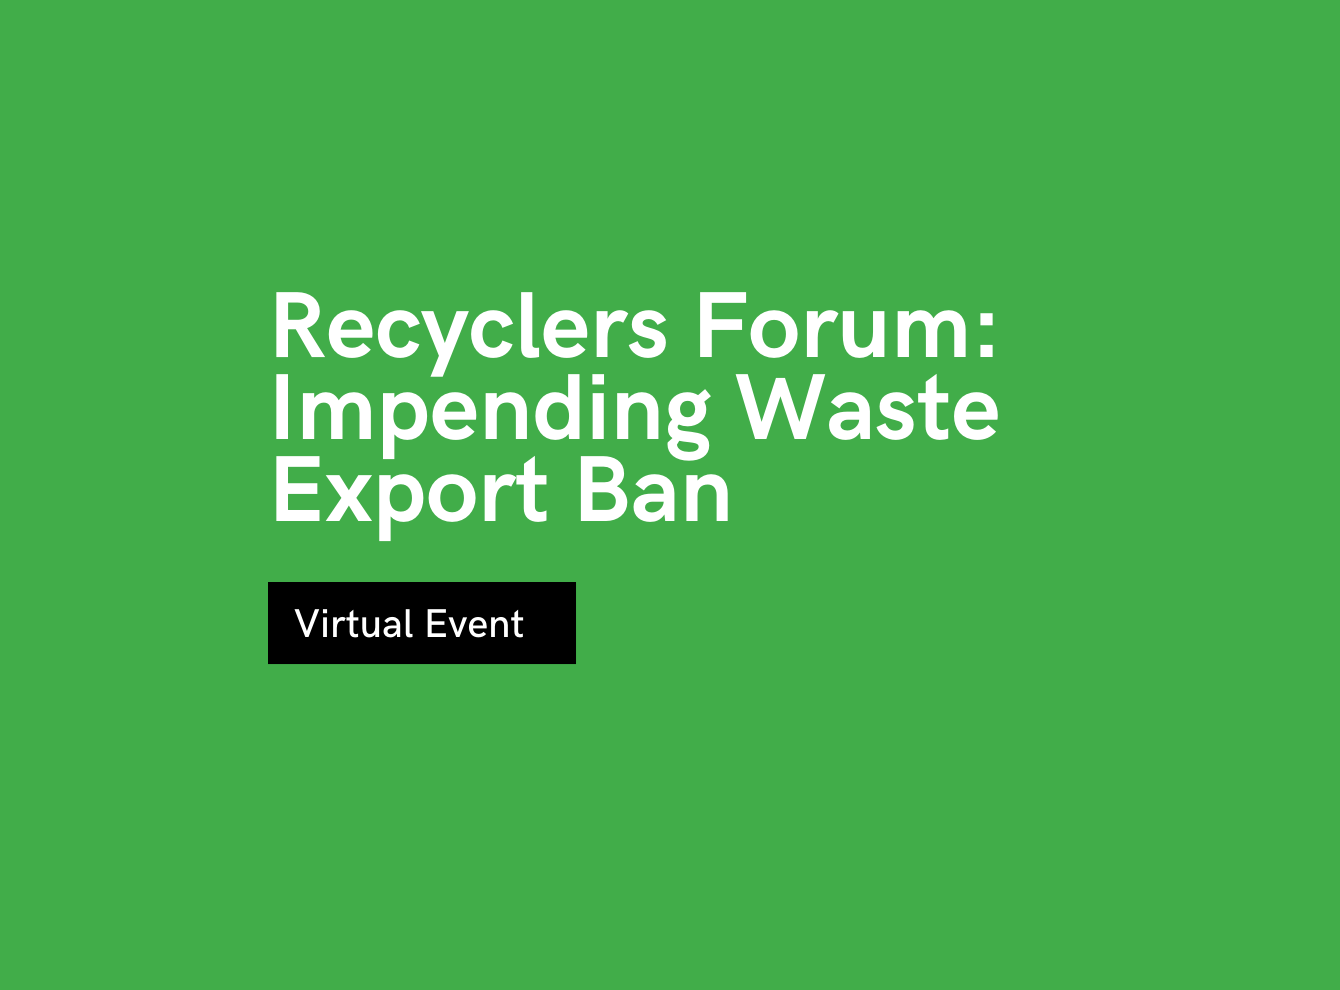 Tyre Recyclers Forum: Impending Waste Export Ban